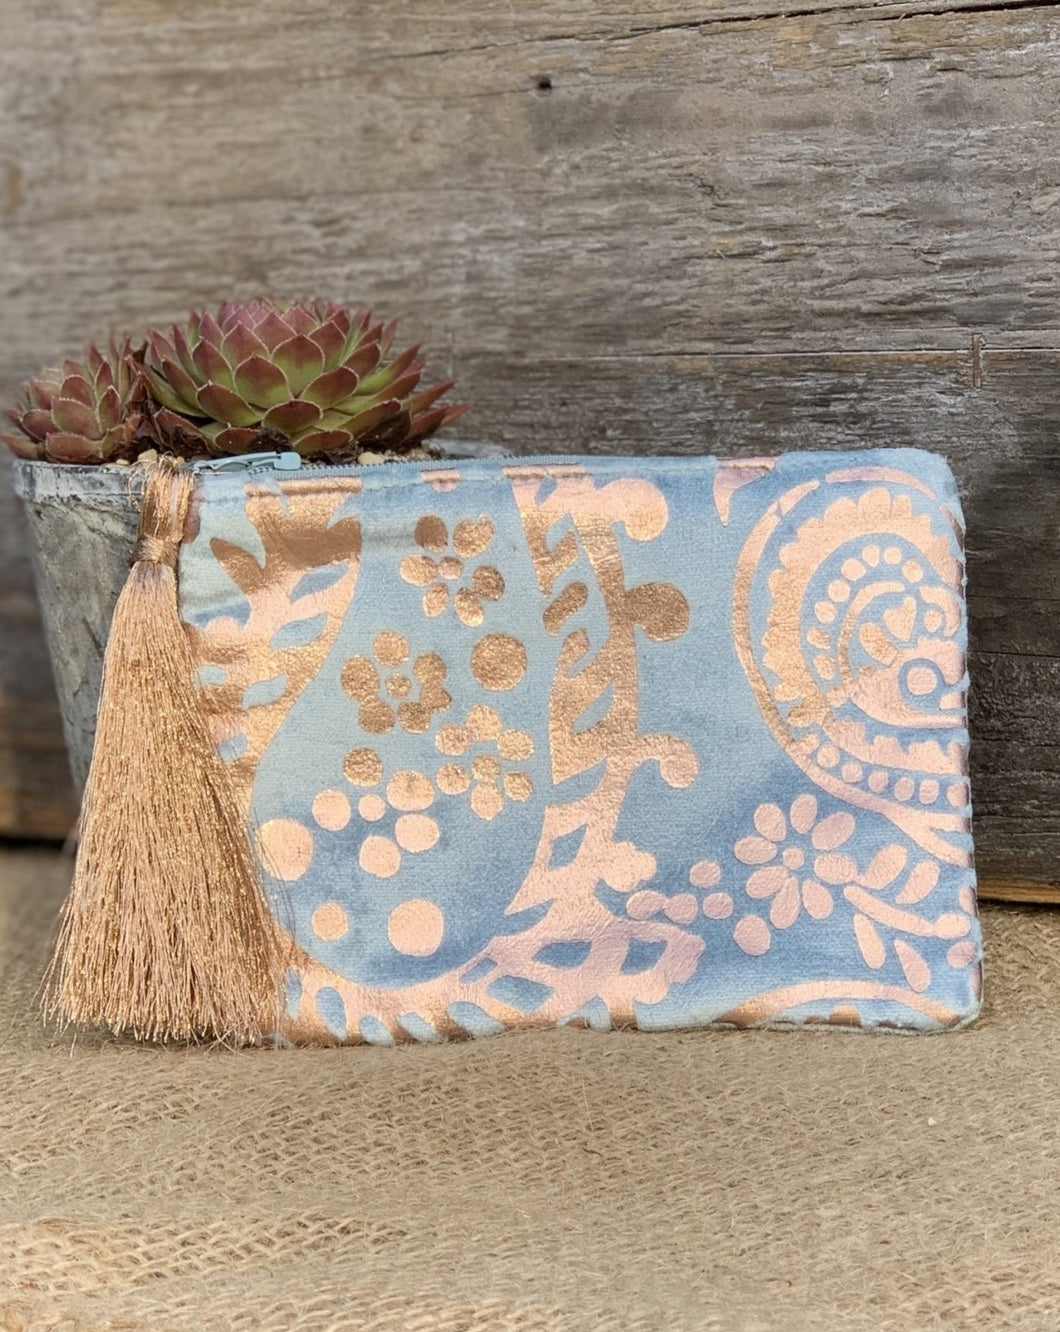 Velvet Gold Swirl Coin Purse - Pale Blue - LavenderLime